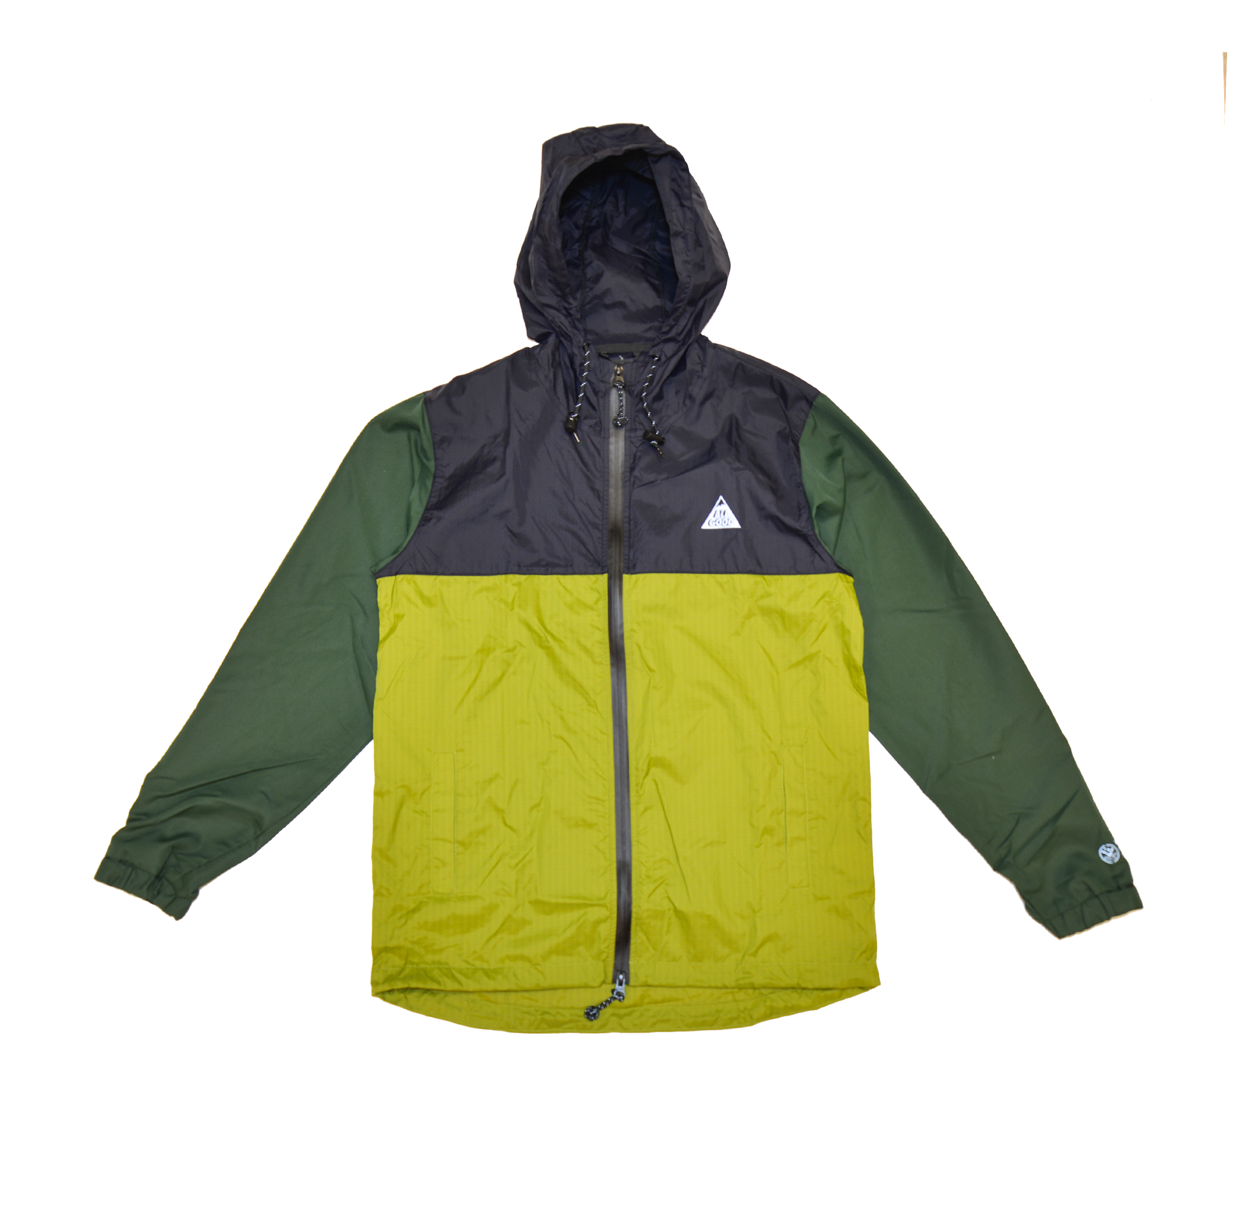 Sulfur Elevation Jacket